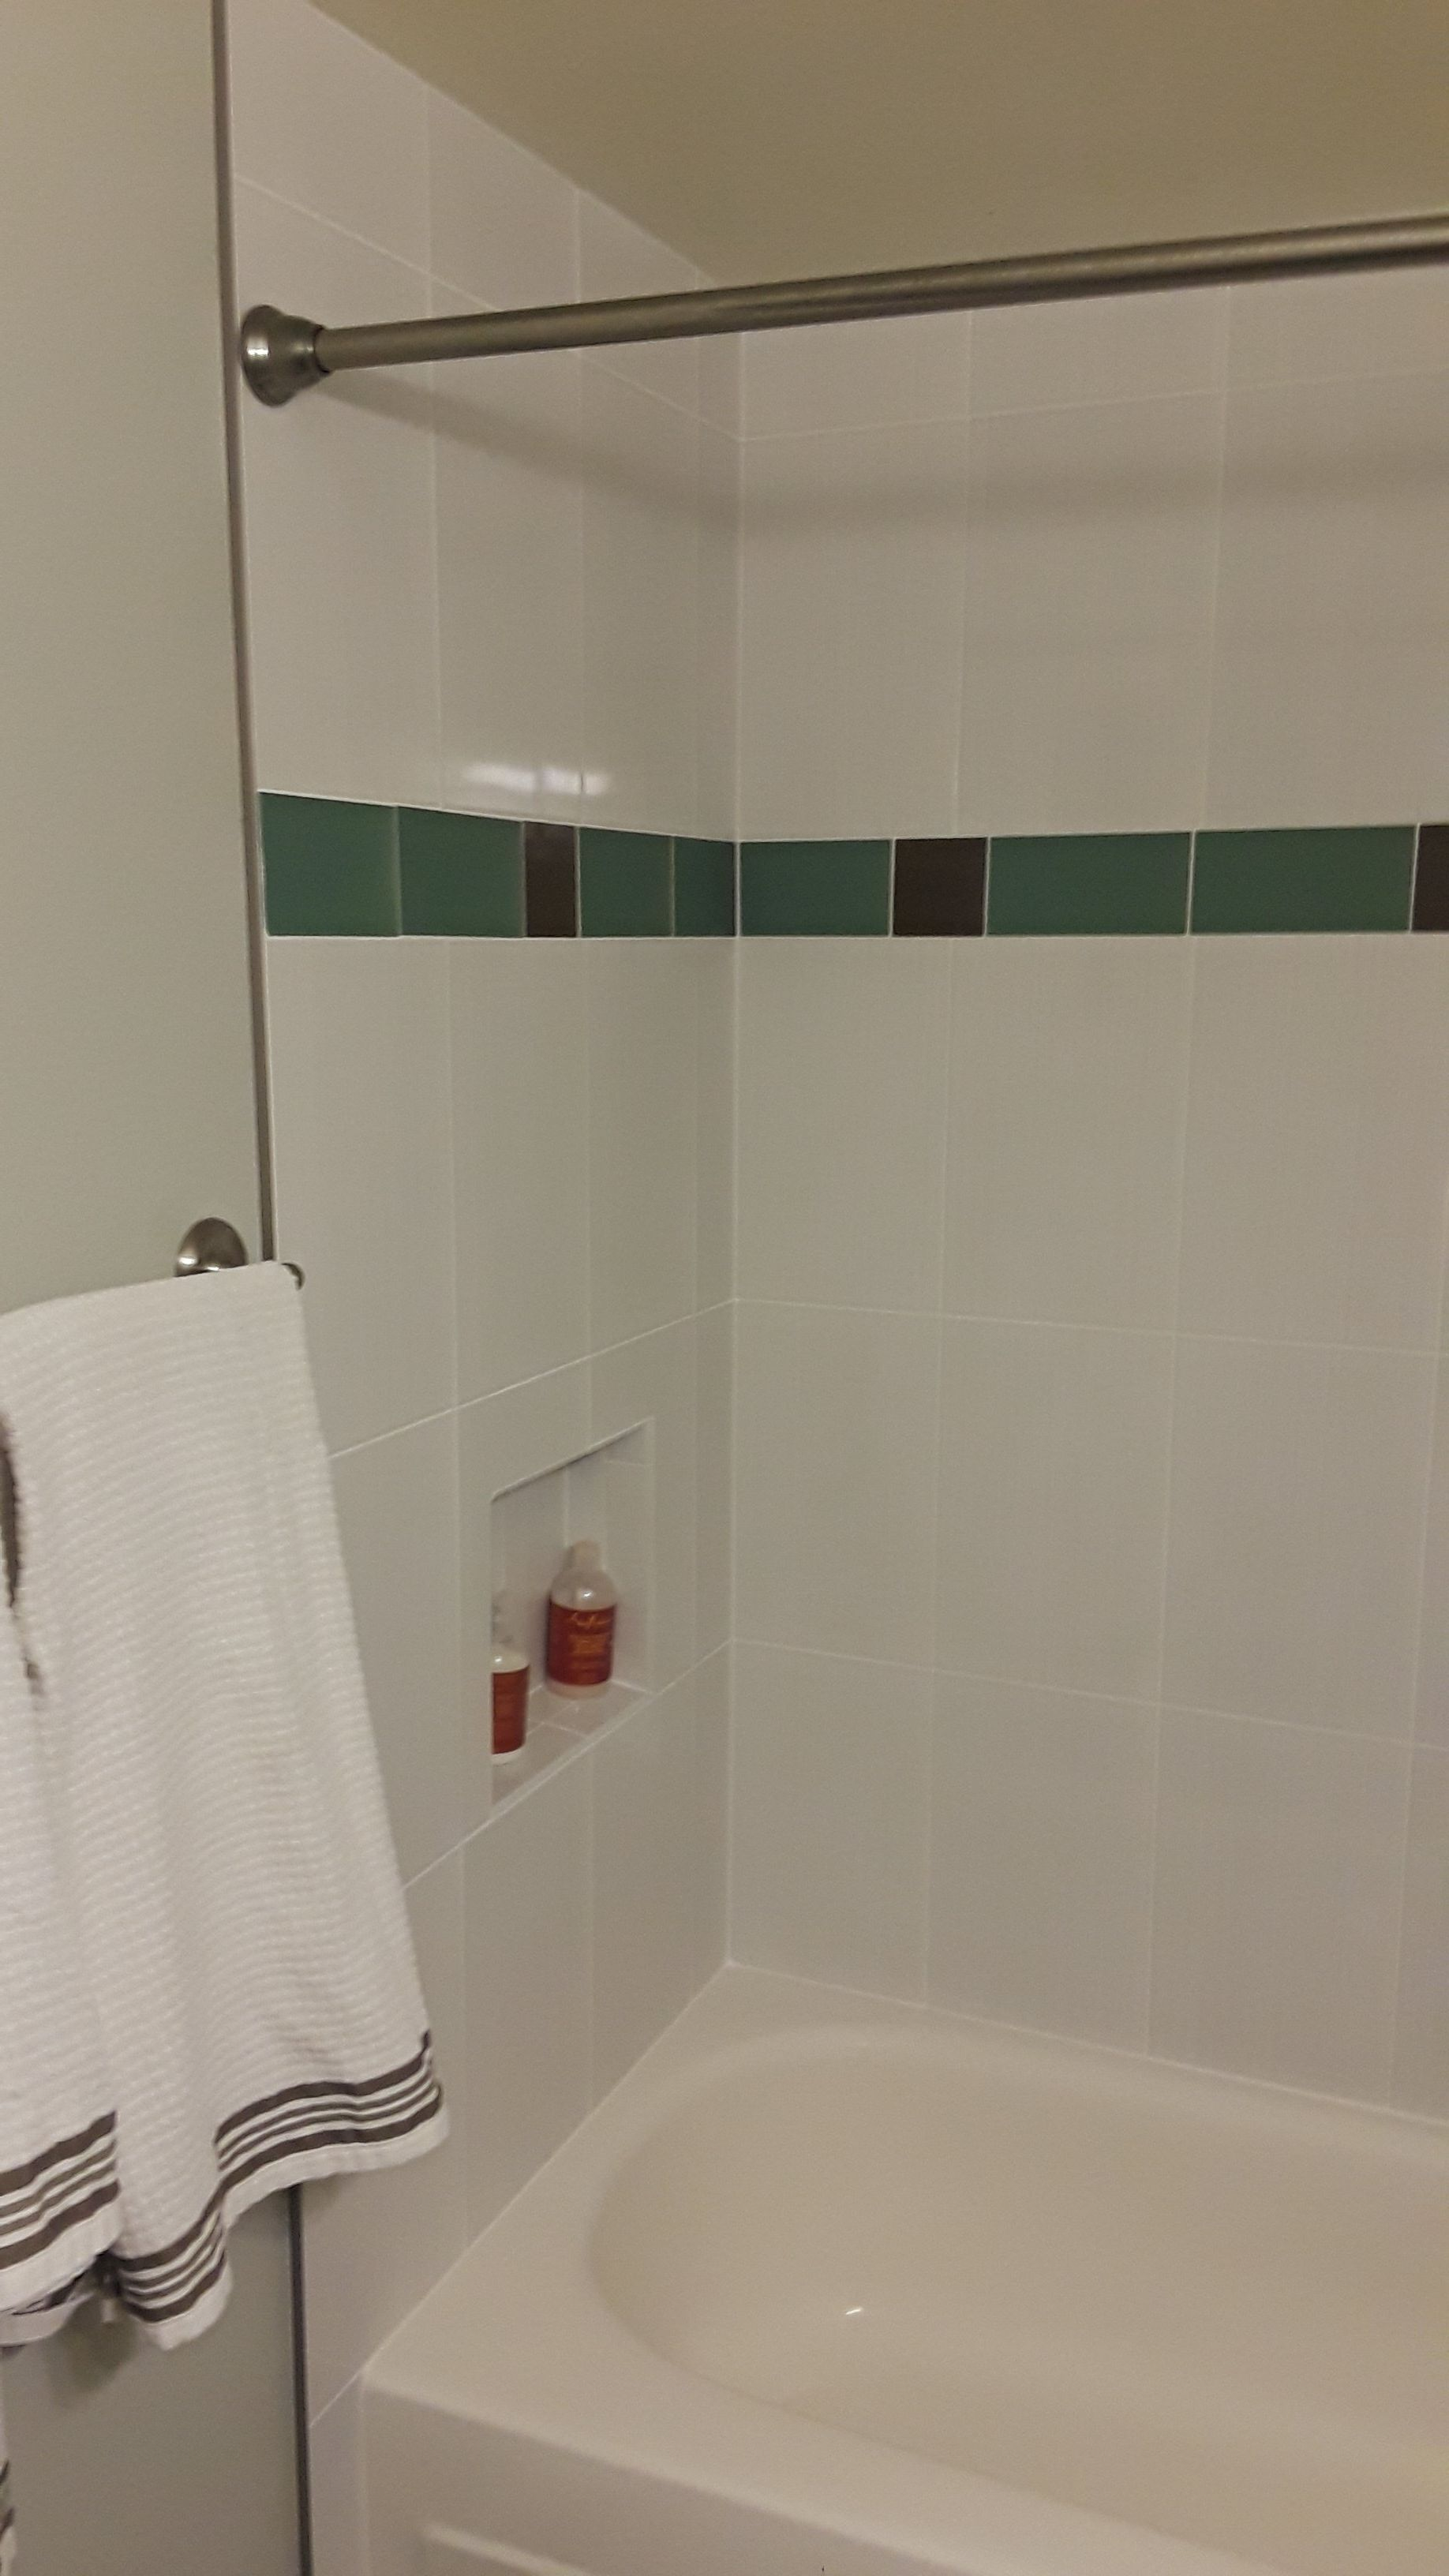 Blairlock White Ceramic Tile 10 X 16 For Tub Surround Along With An Accent Row Of Green Beach Glass Tile From Pen Tub Surround White Ceramic Tiles Bathroom Tub